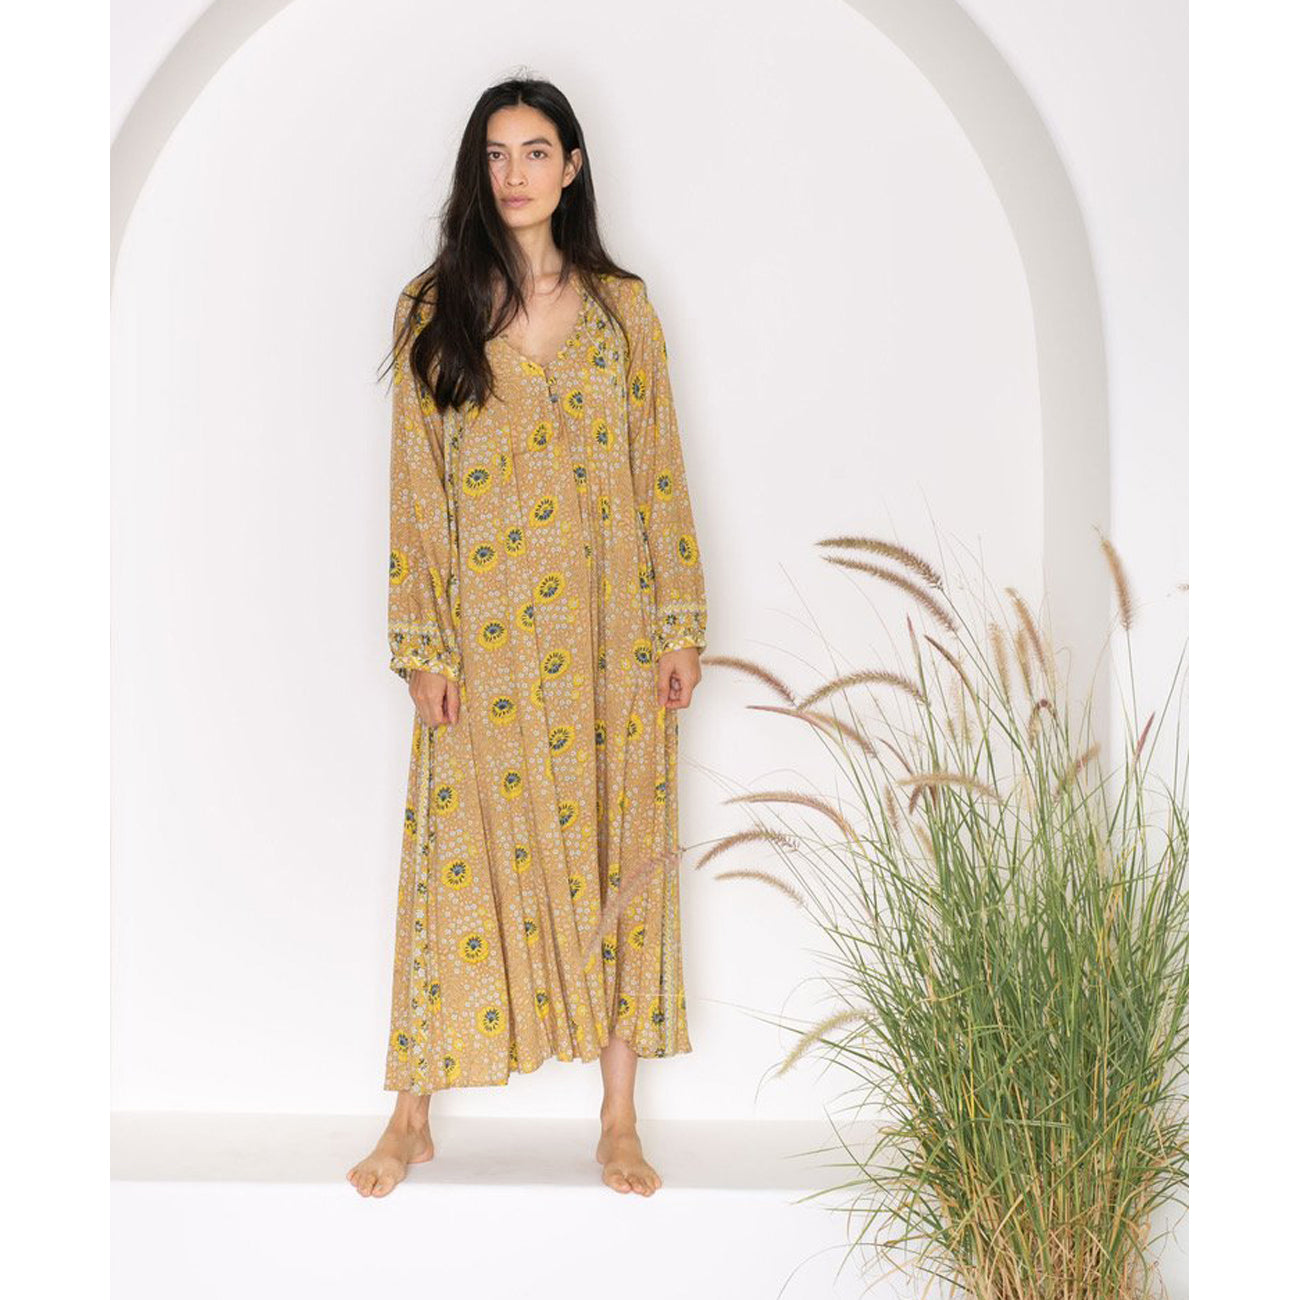 Natalie Martin Fiore Maxi in Vintage Flowers Gold